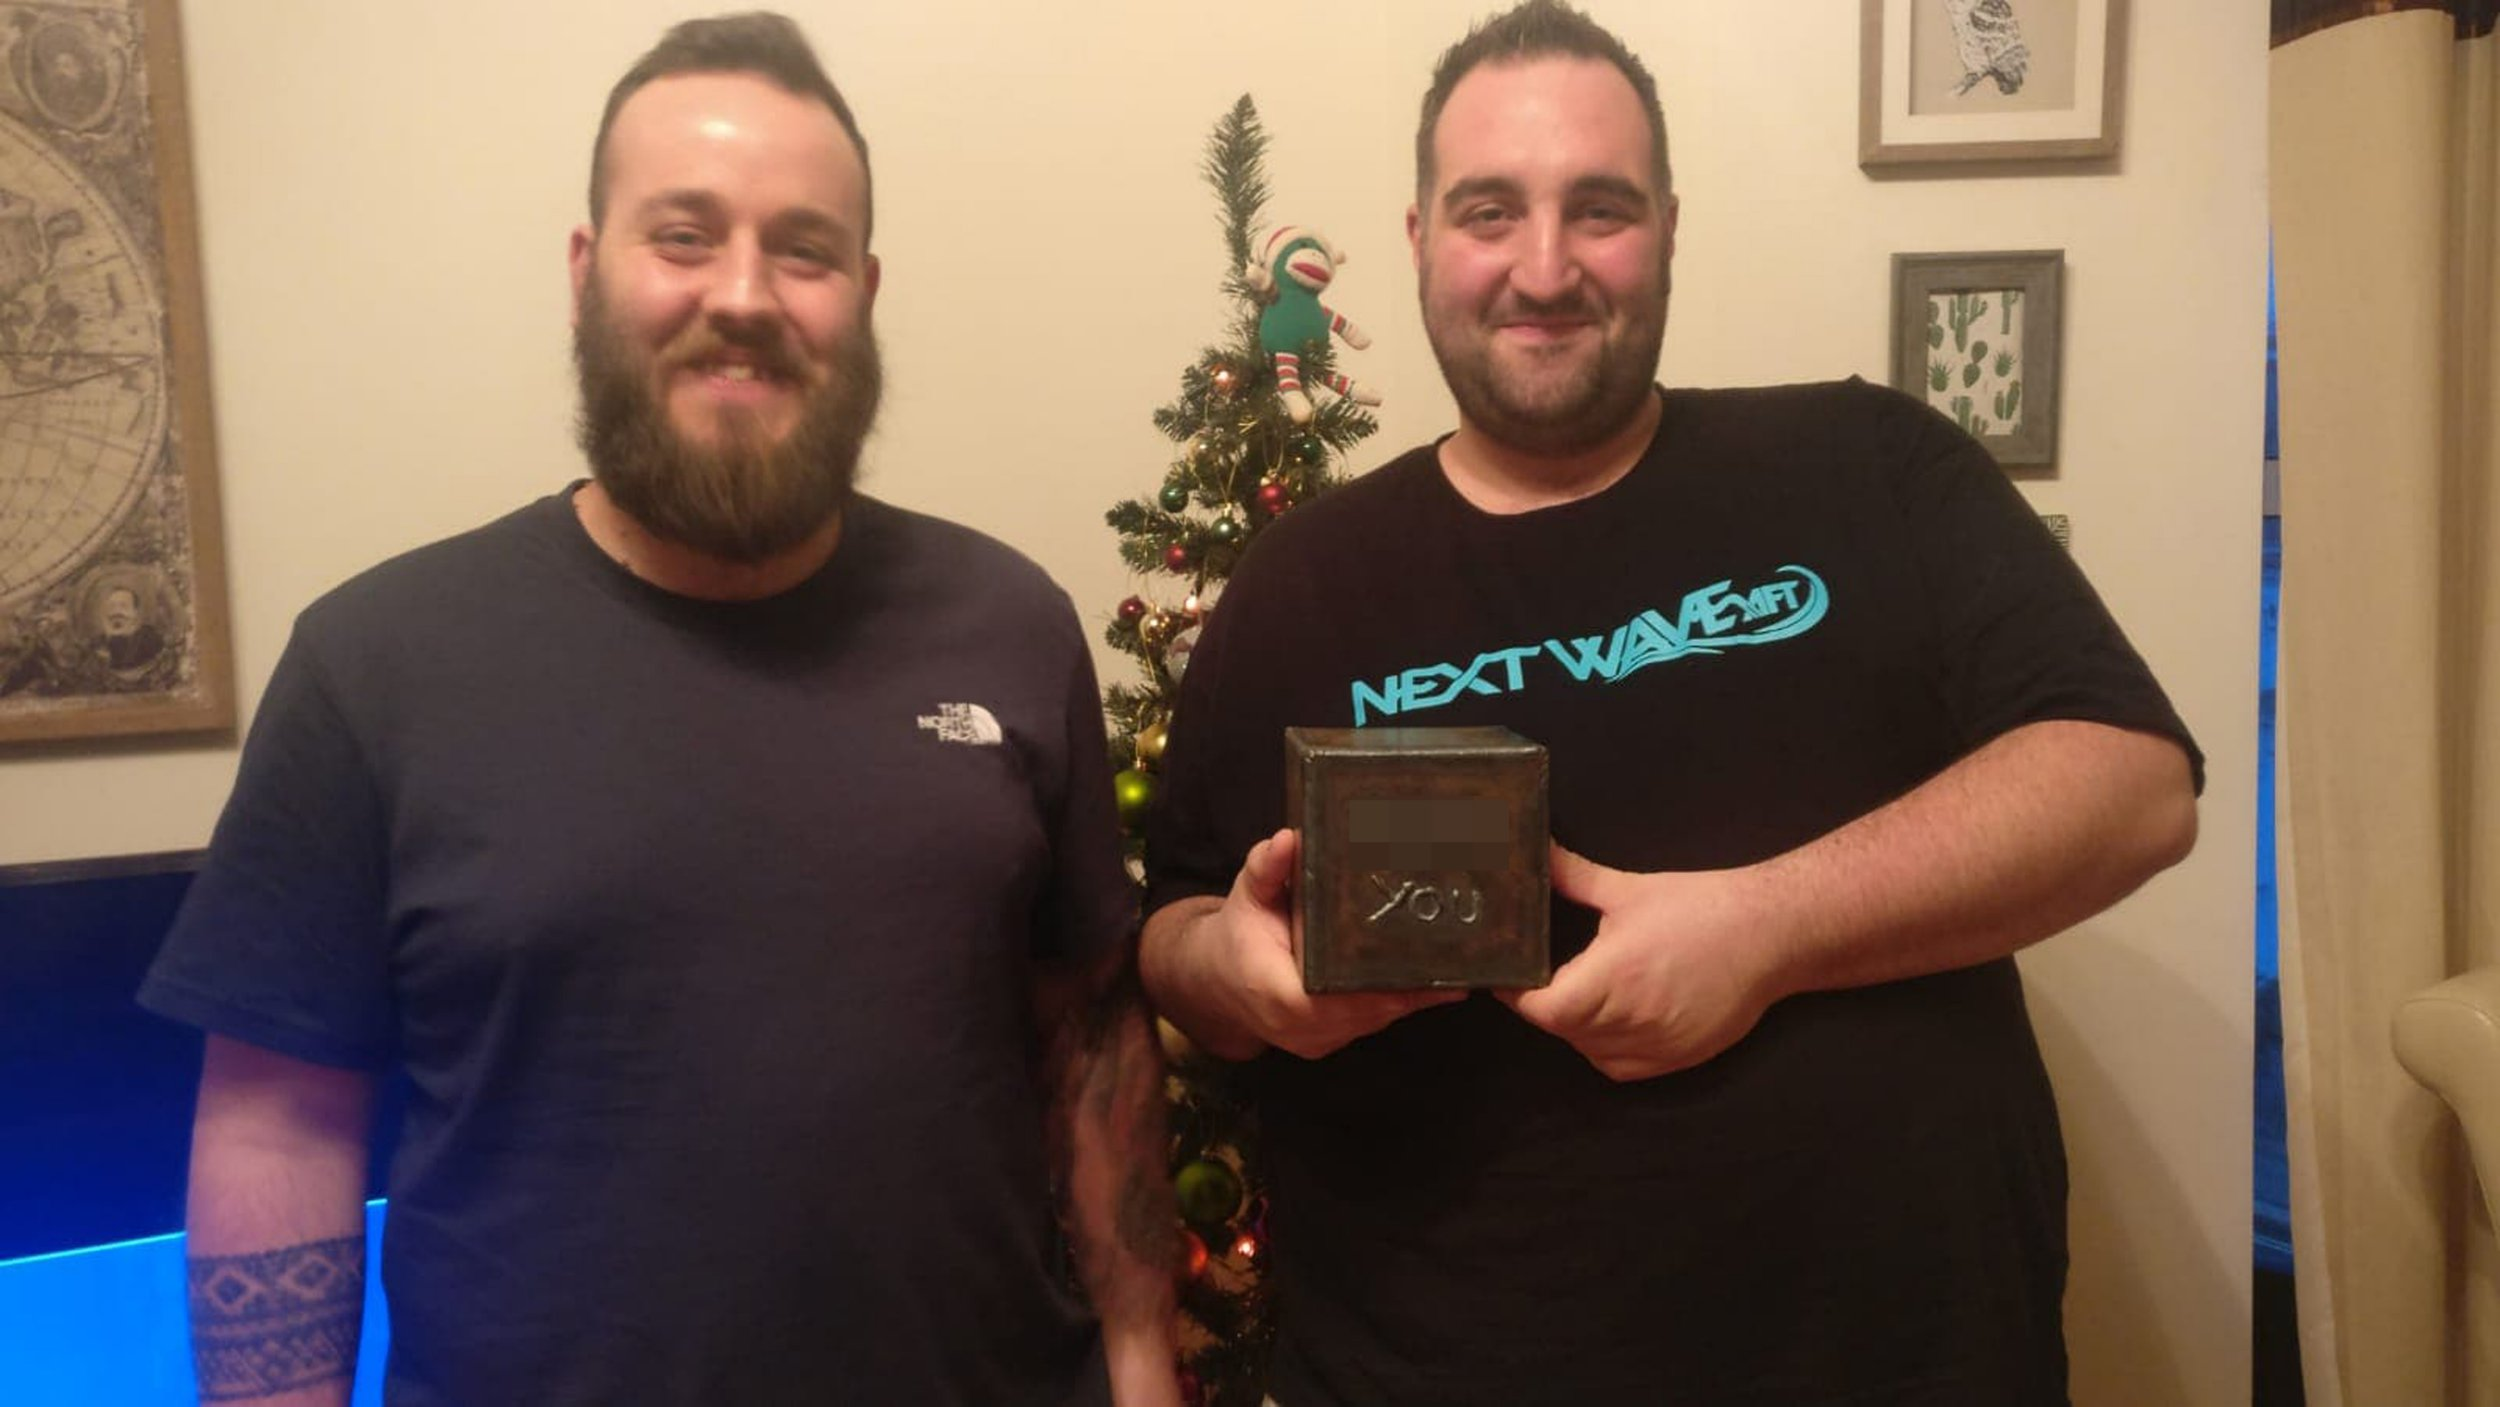 Man pranks his brother by putting his Christmas gift in a 'f*** you' welded steel box